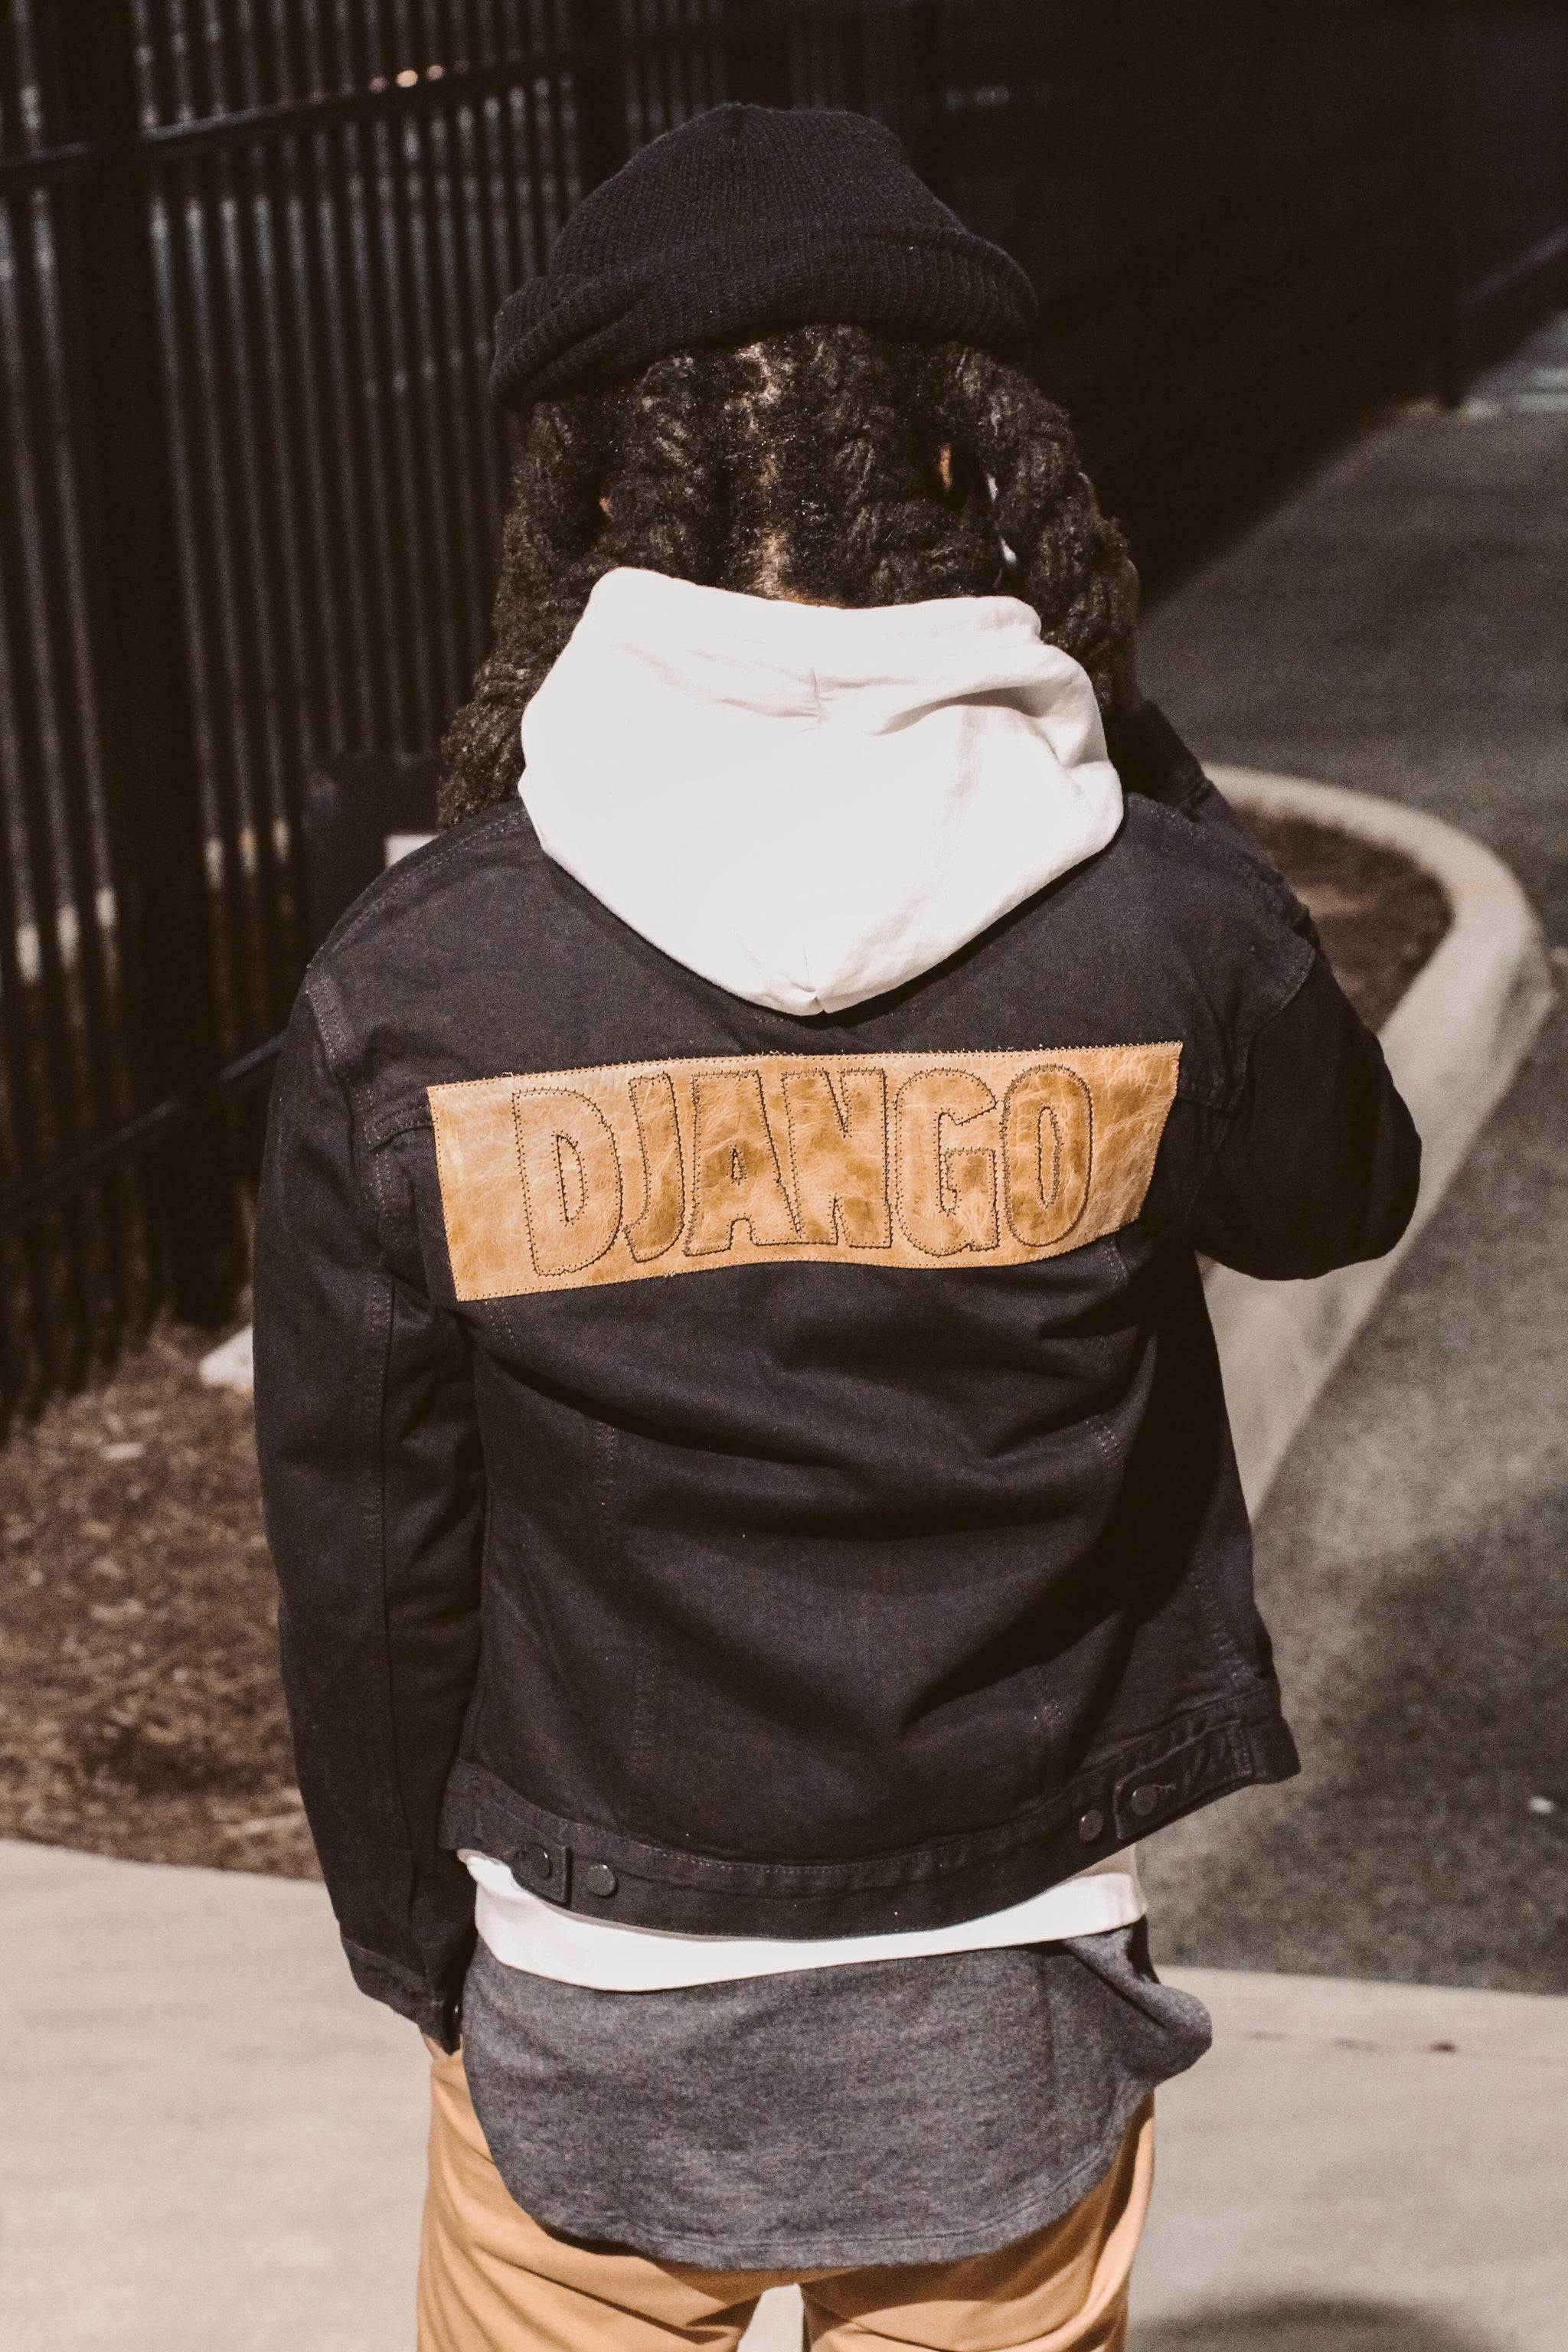 Levi's x Django Unchained -  Denim Jacket